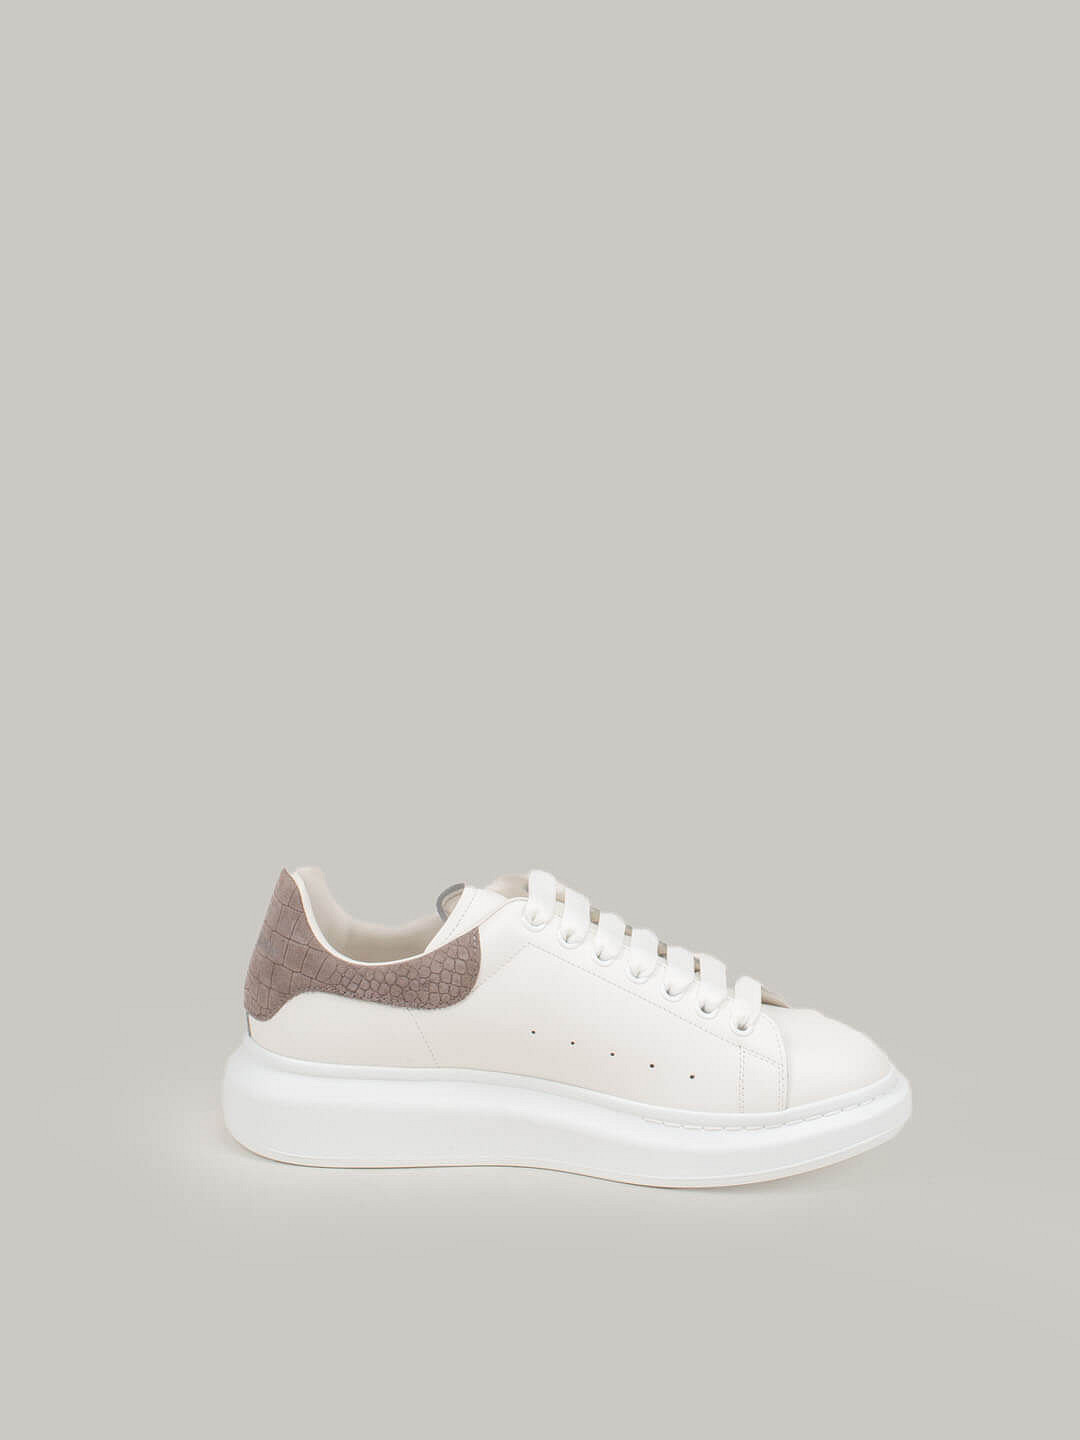 white Low Top Lace Up Sneaker grey